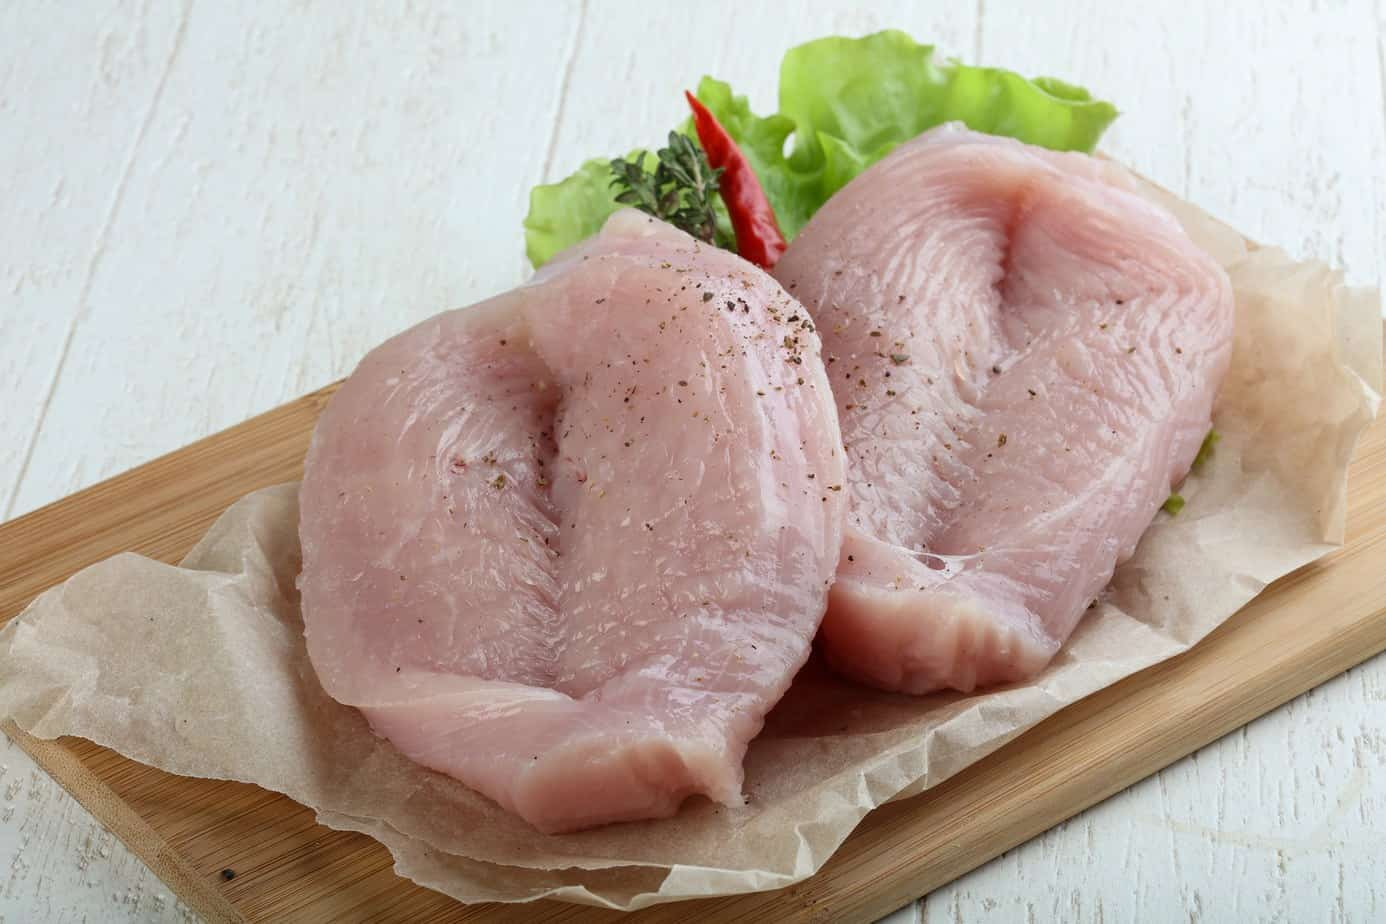 Raw Turkey Breast